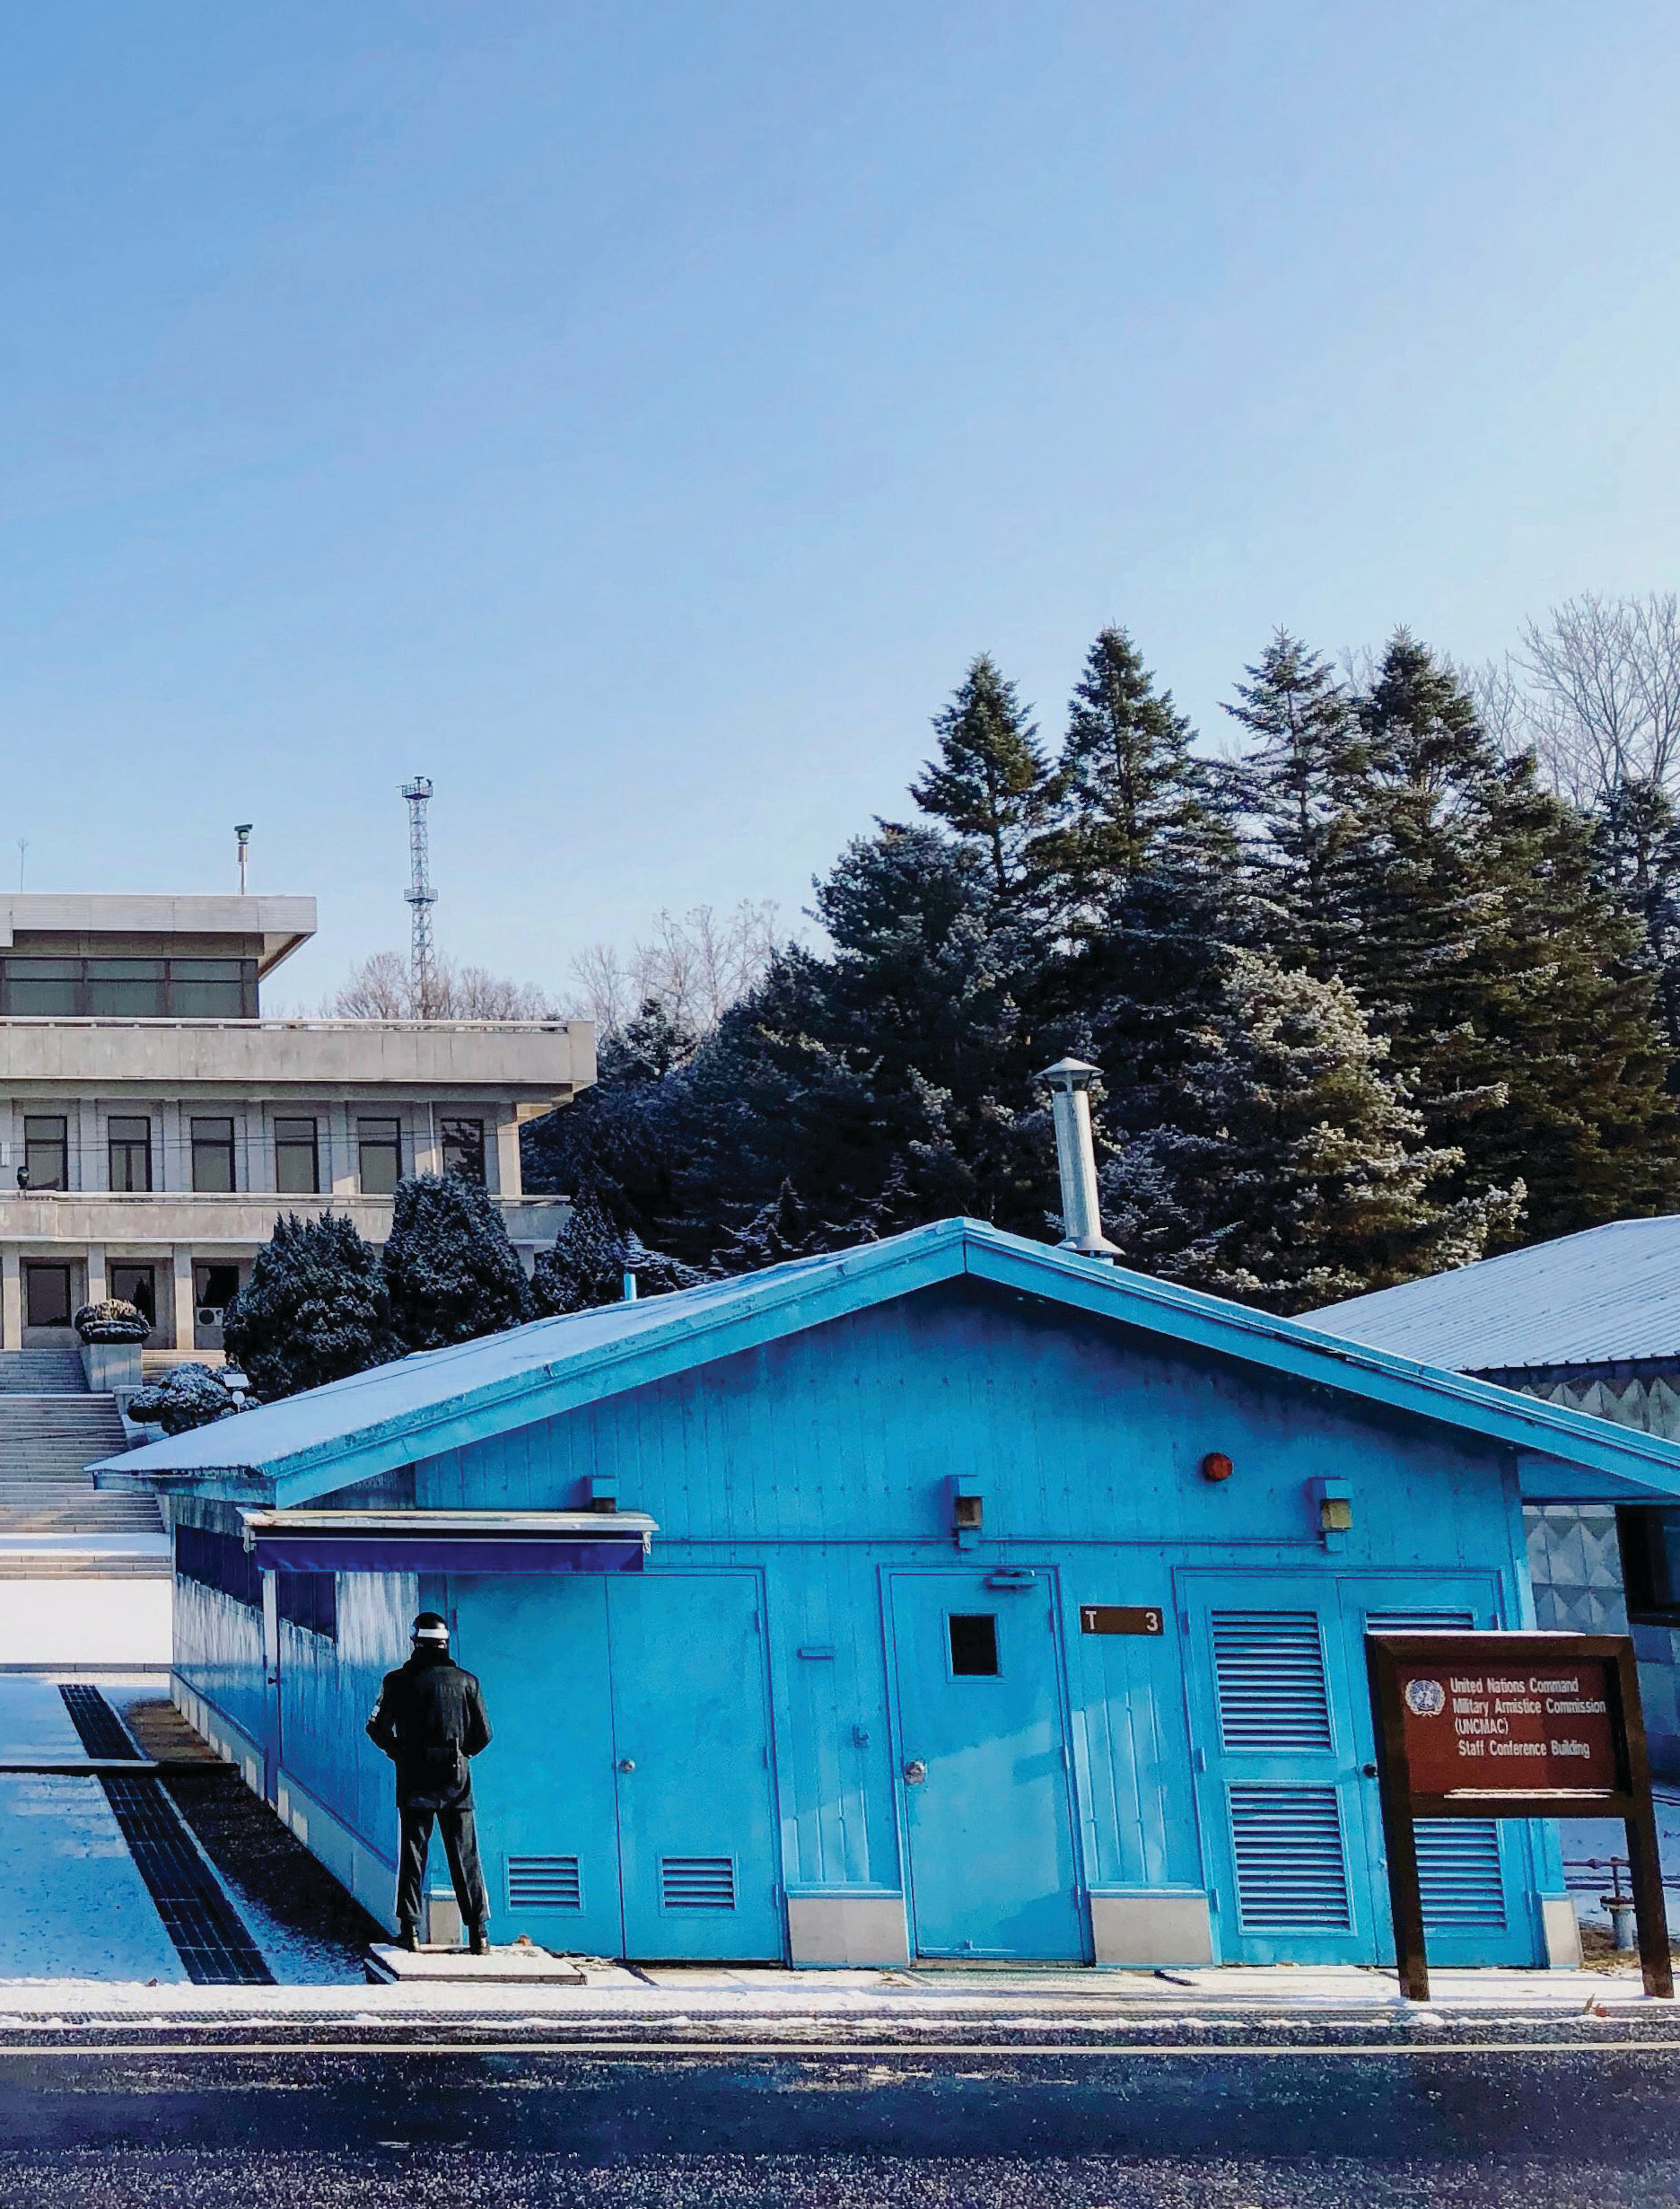 The first snow of the season in the Korean Demilitarized Zone, where several defections from the North to the South have raised tensions, December 2017. (MICHAEL WILNER)